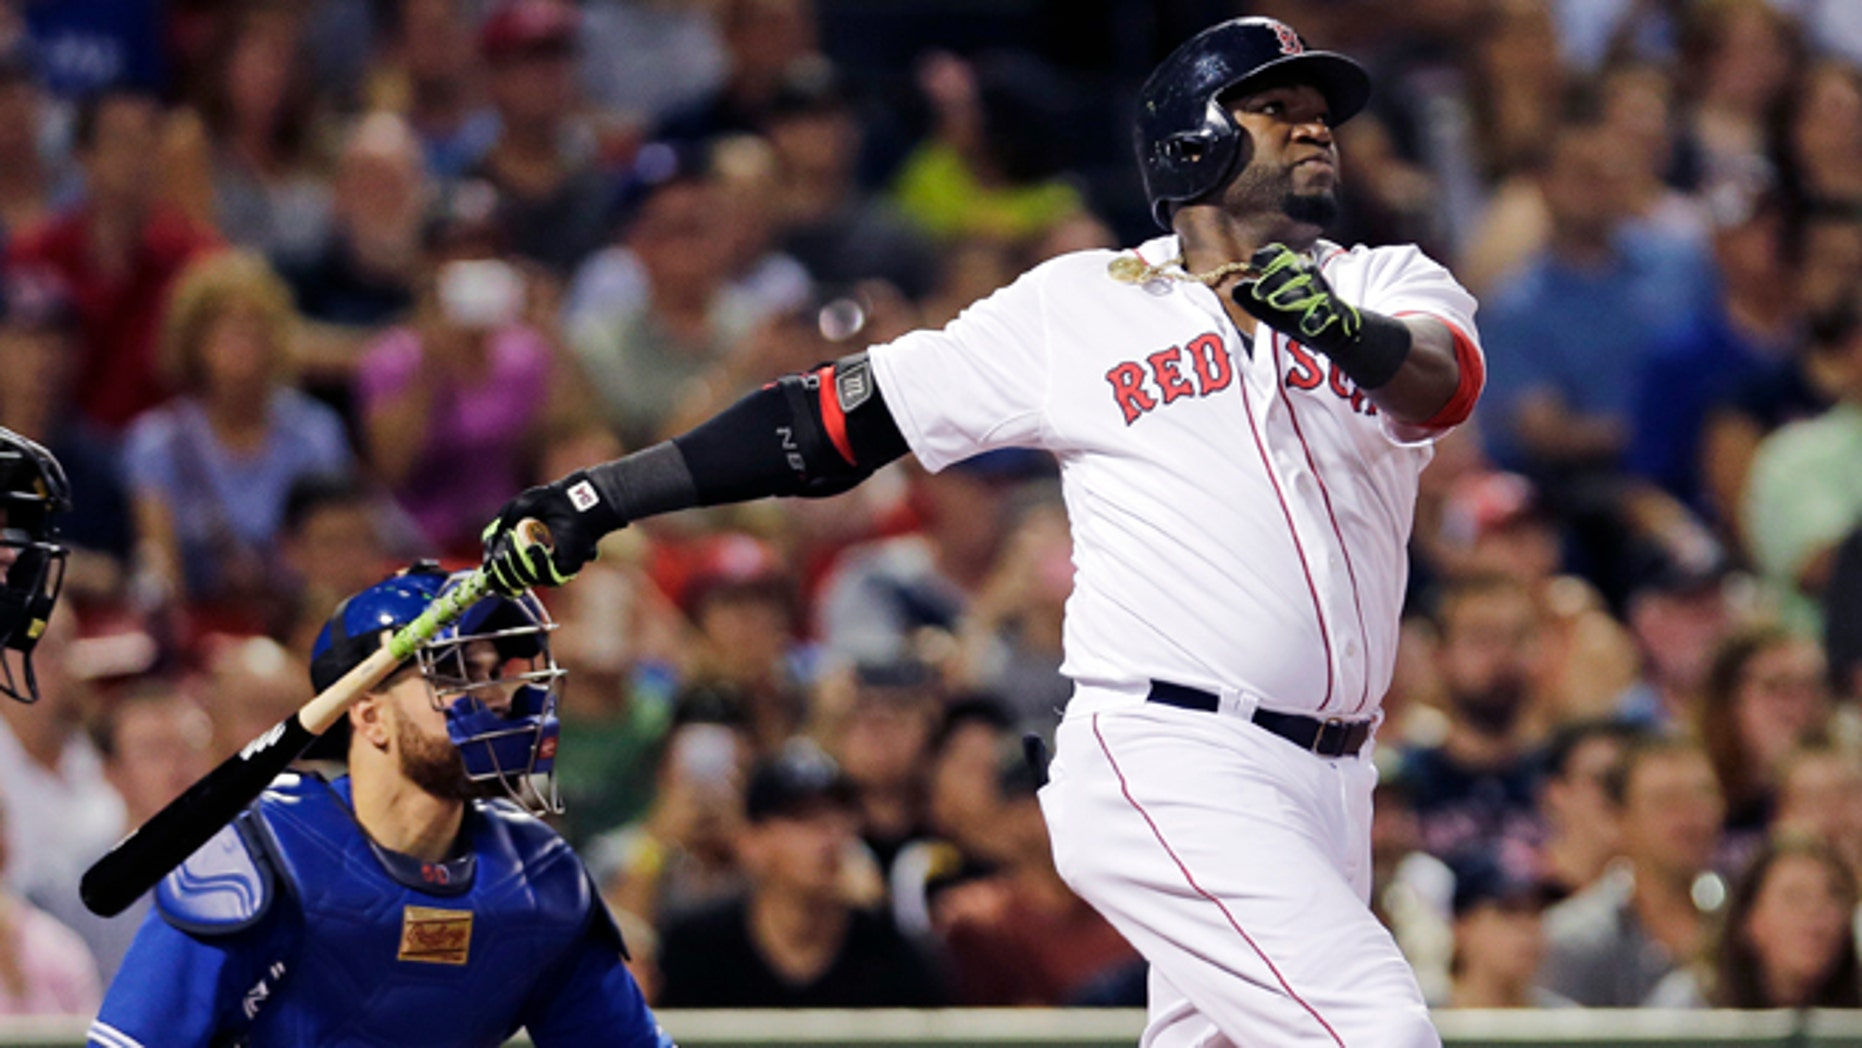 Boston Red Sox designated hitter David Ortiz watches his 498th career home run, off Toronto Blue Jays starting pitcher Drew Hutchison during the third inning of a baseball game at Fenway Park in Boston, Wednesday, Sept. 9, 2015. (AP Photo/Charles Krupa)